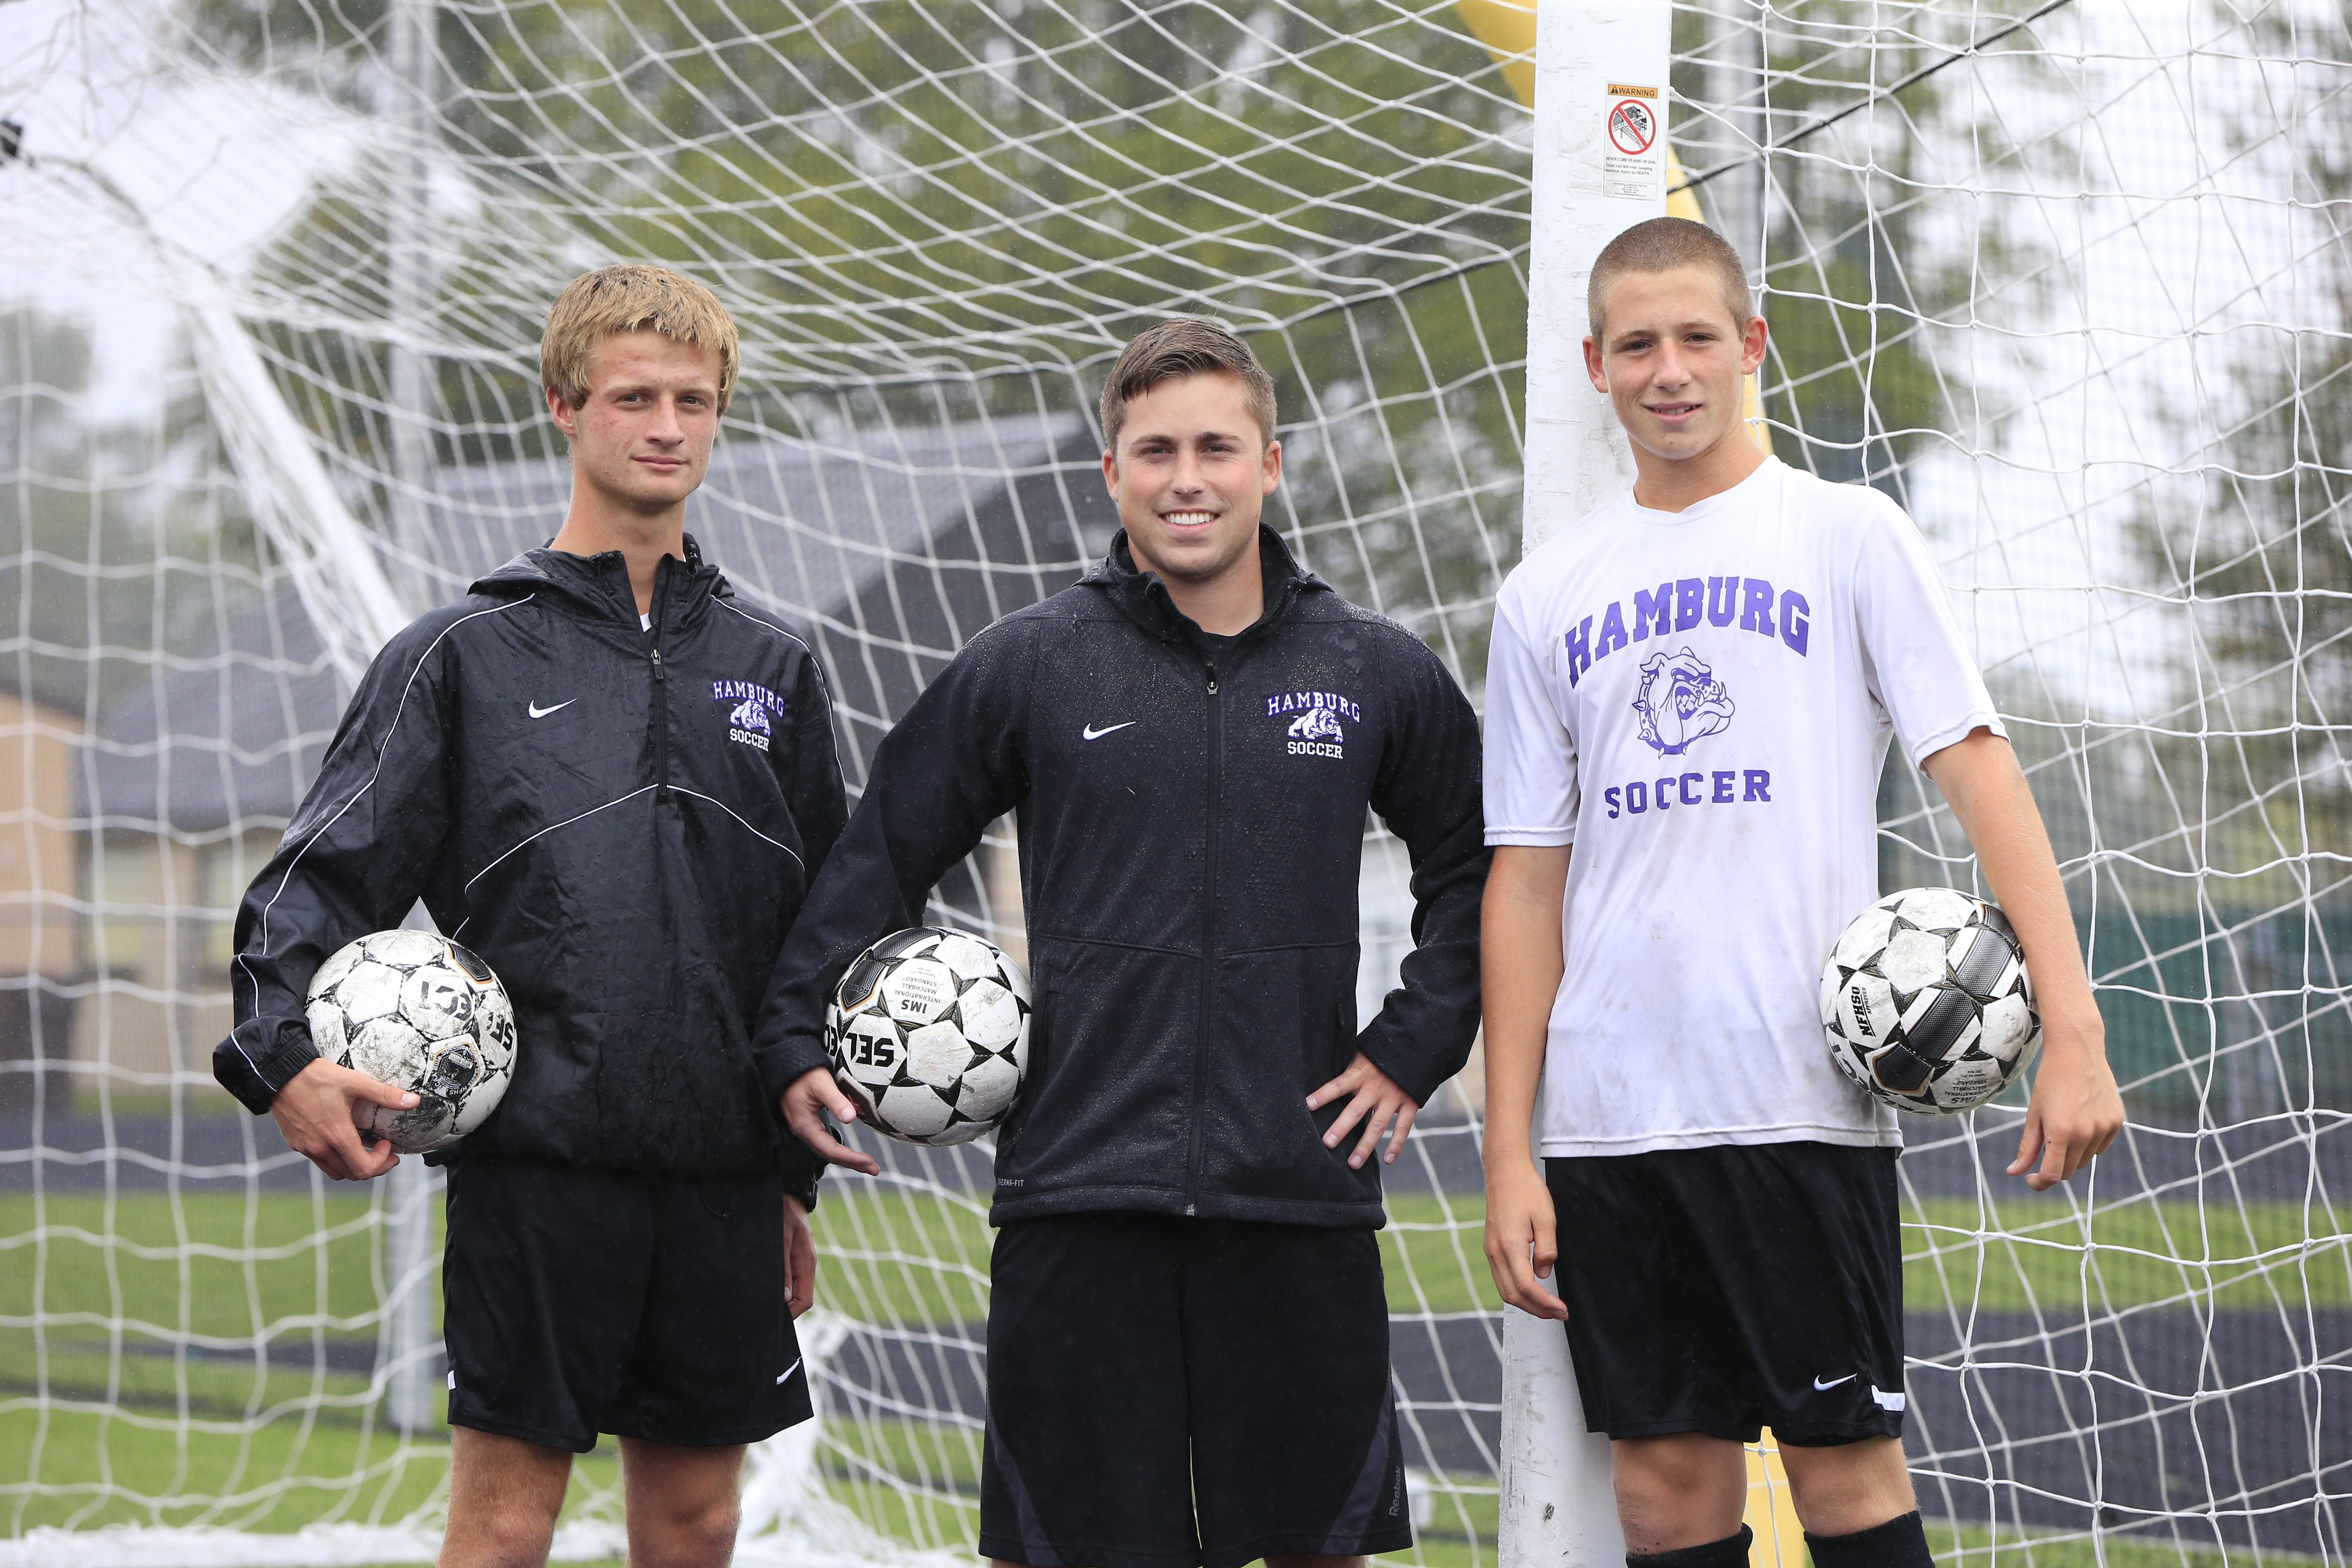 Hamburg boys soccer coach Tony Schiappa, center, poses with top players Will Smith, left, and Justus Hoffman at Hamburg High School on Monday.